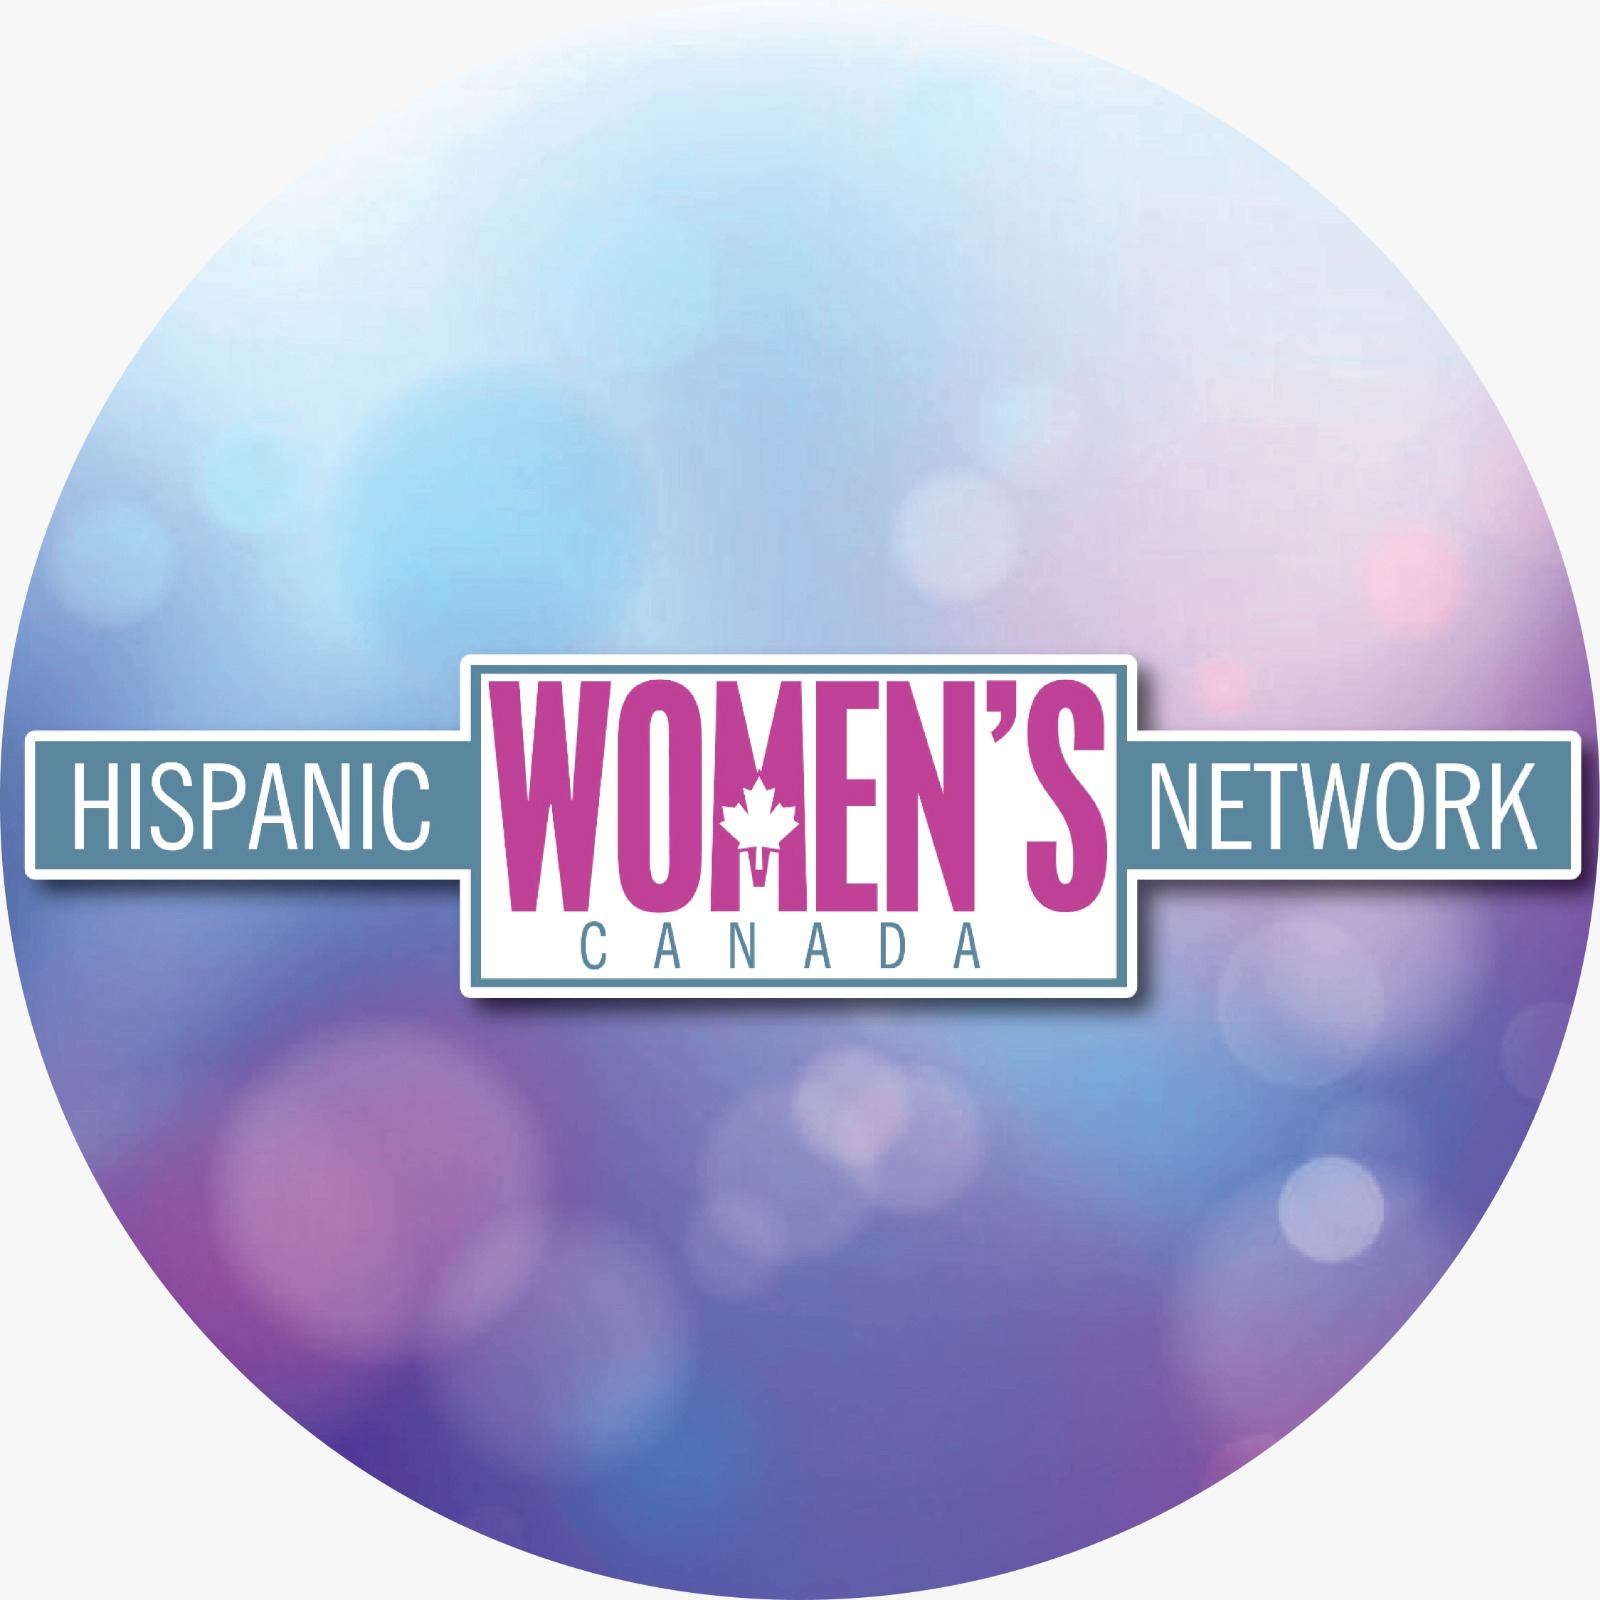 Hispanic Women's Network